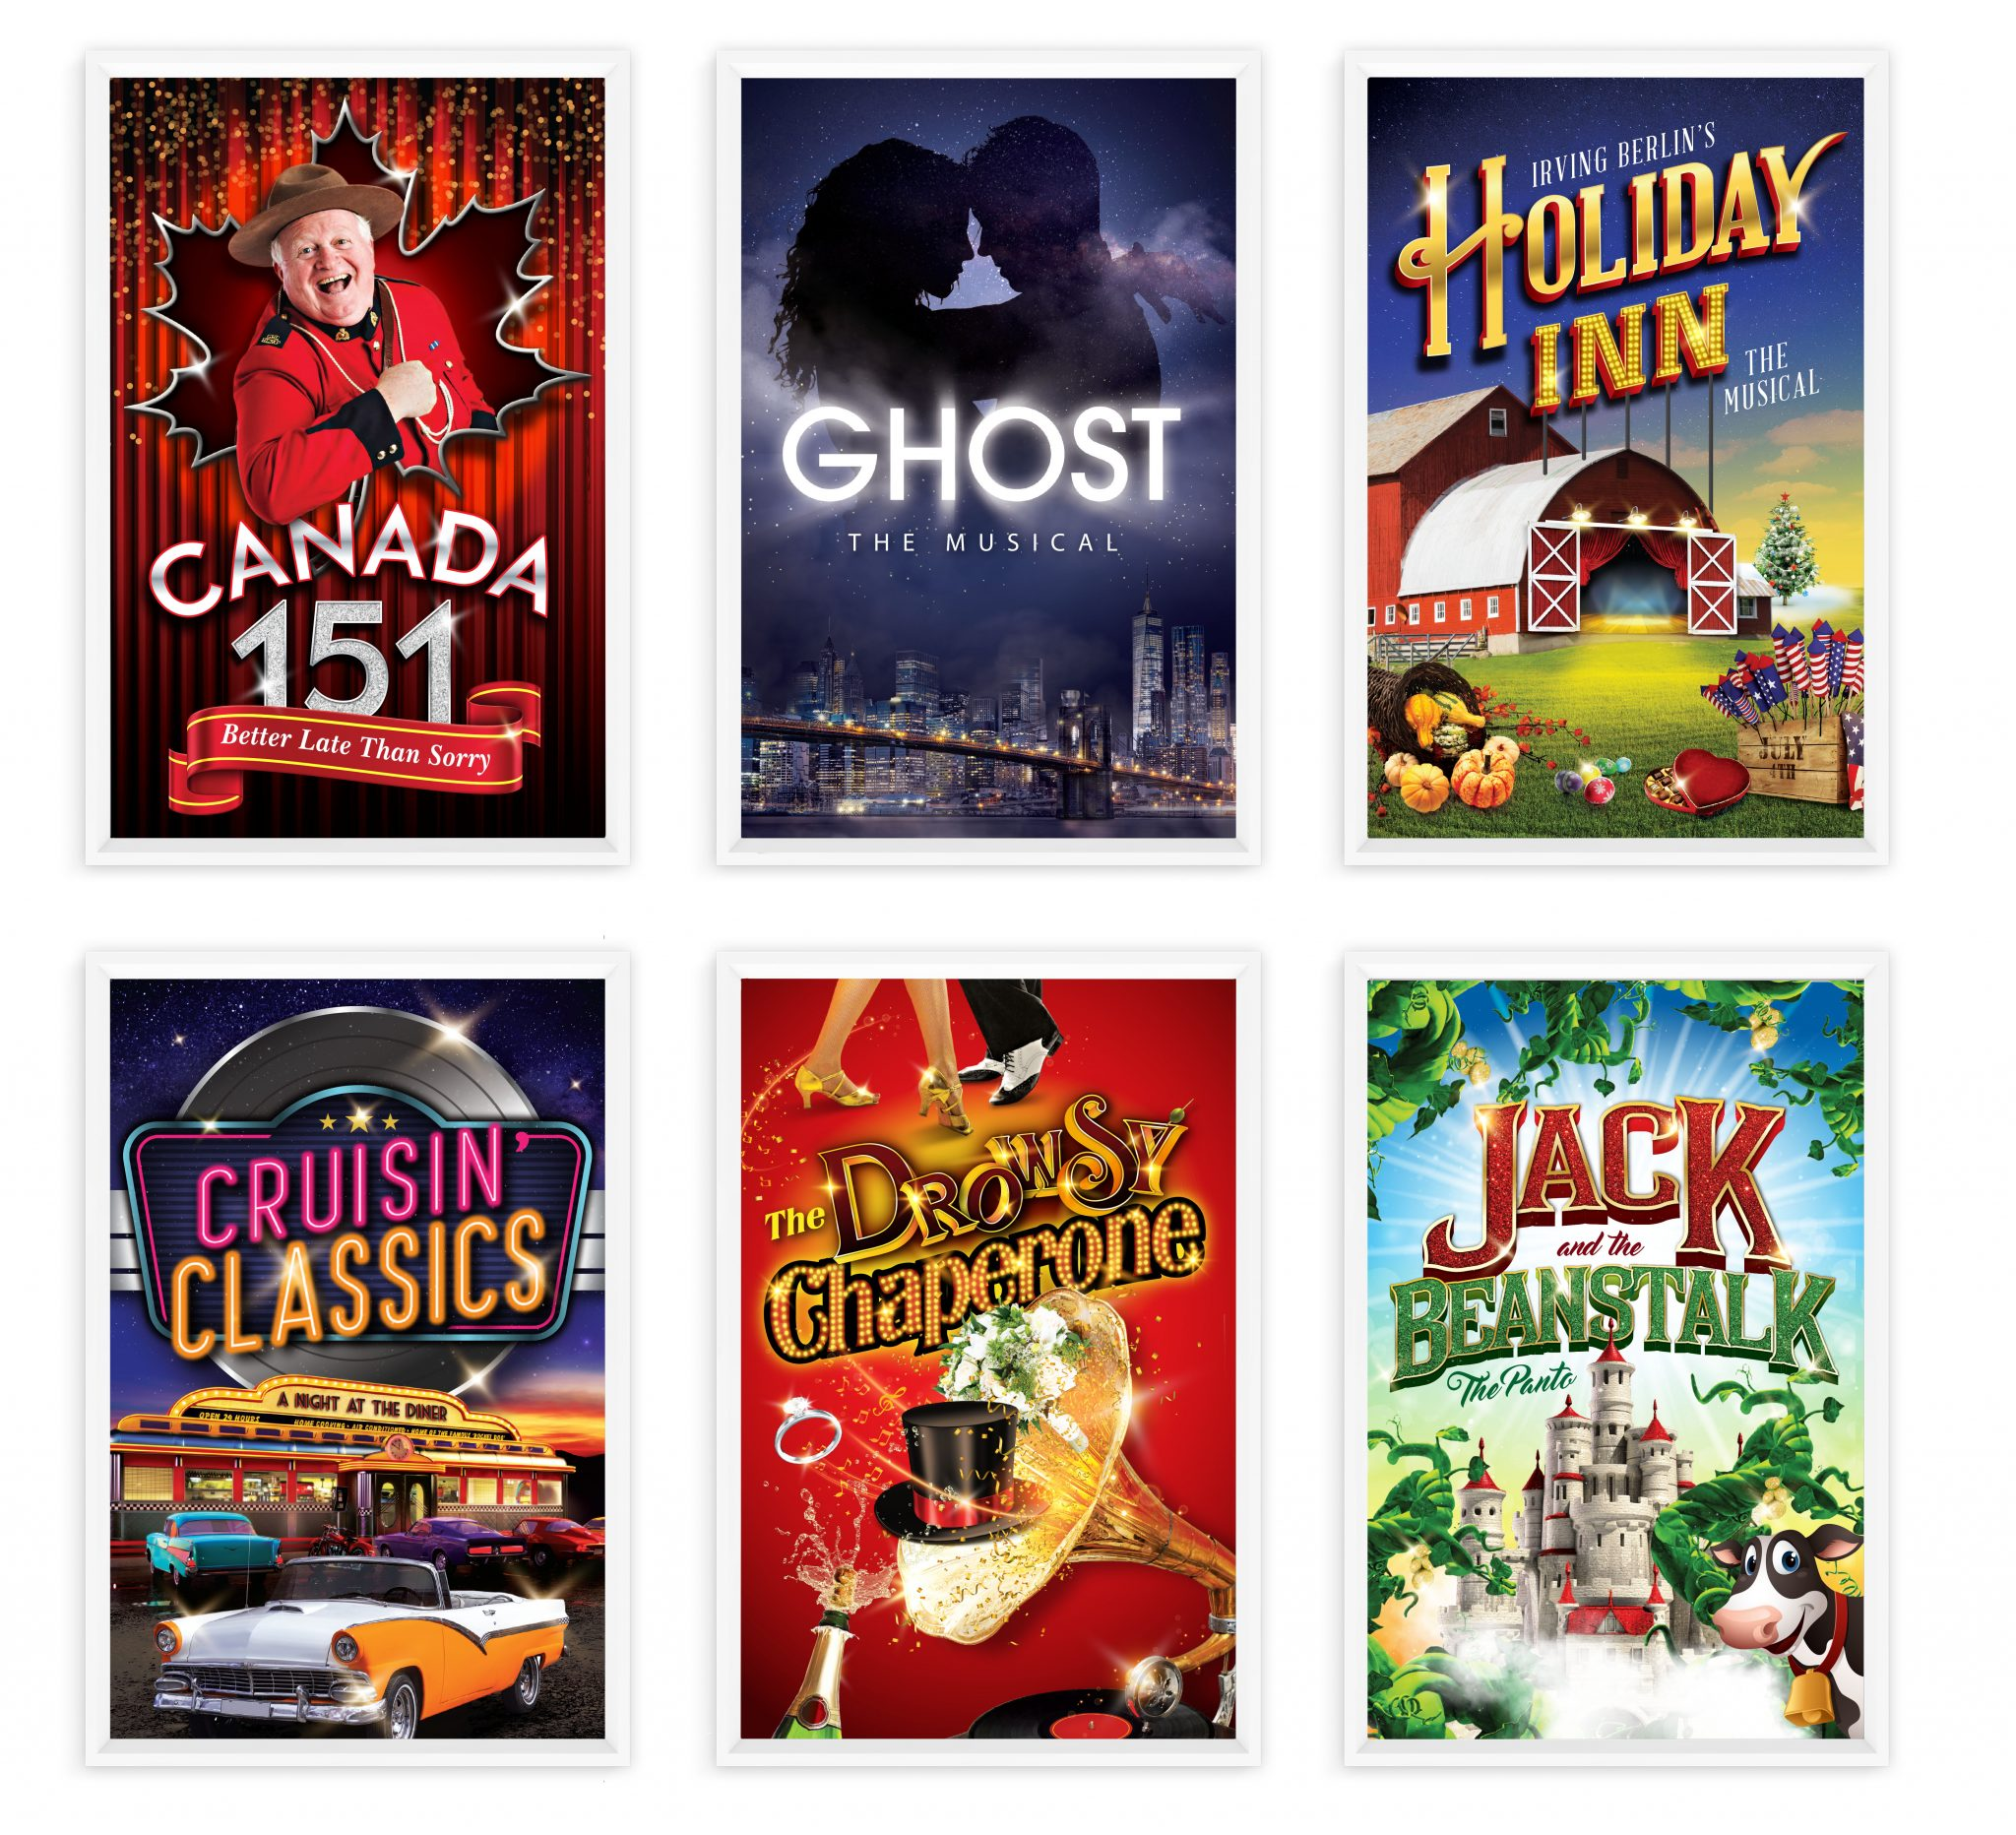 Production posters for Canada 151, Ghost, Holiday Inn, Cruisin' Classics, The Drowsy Chaperone, and Jack and the Beanstalk.